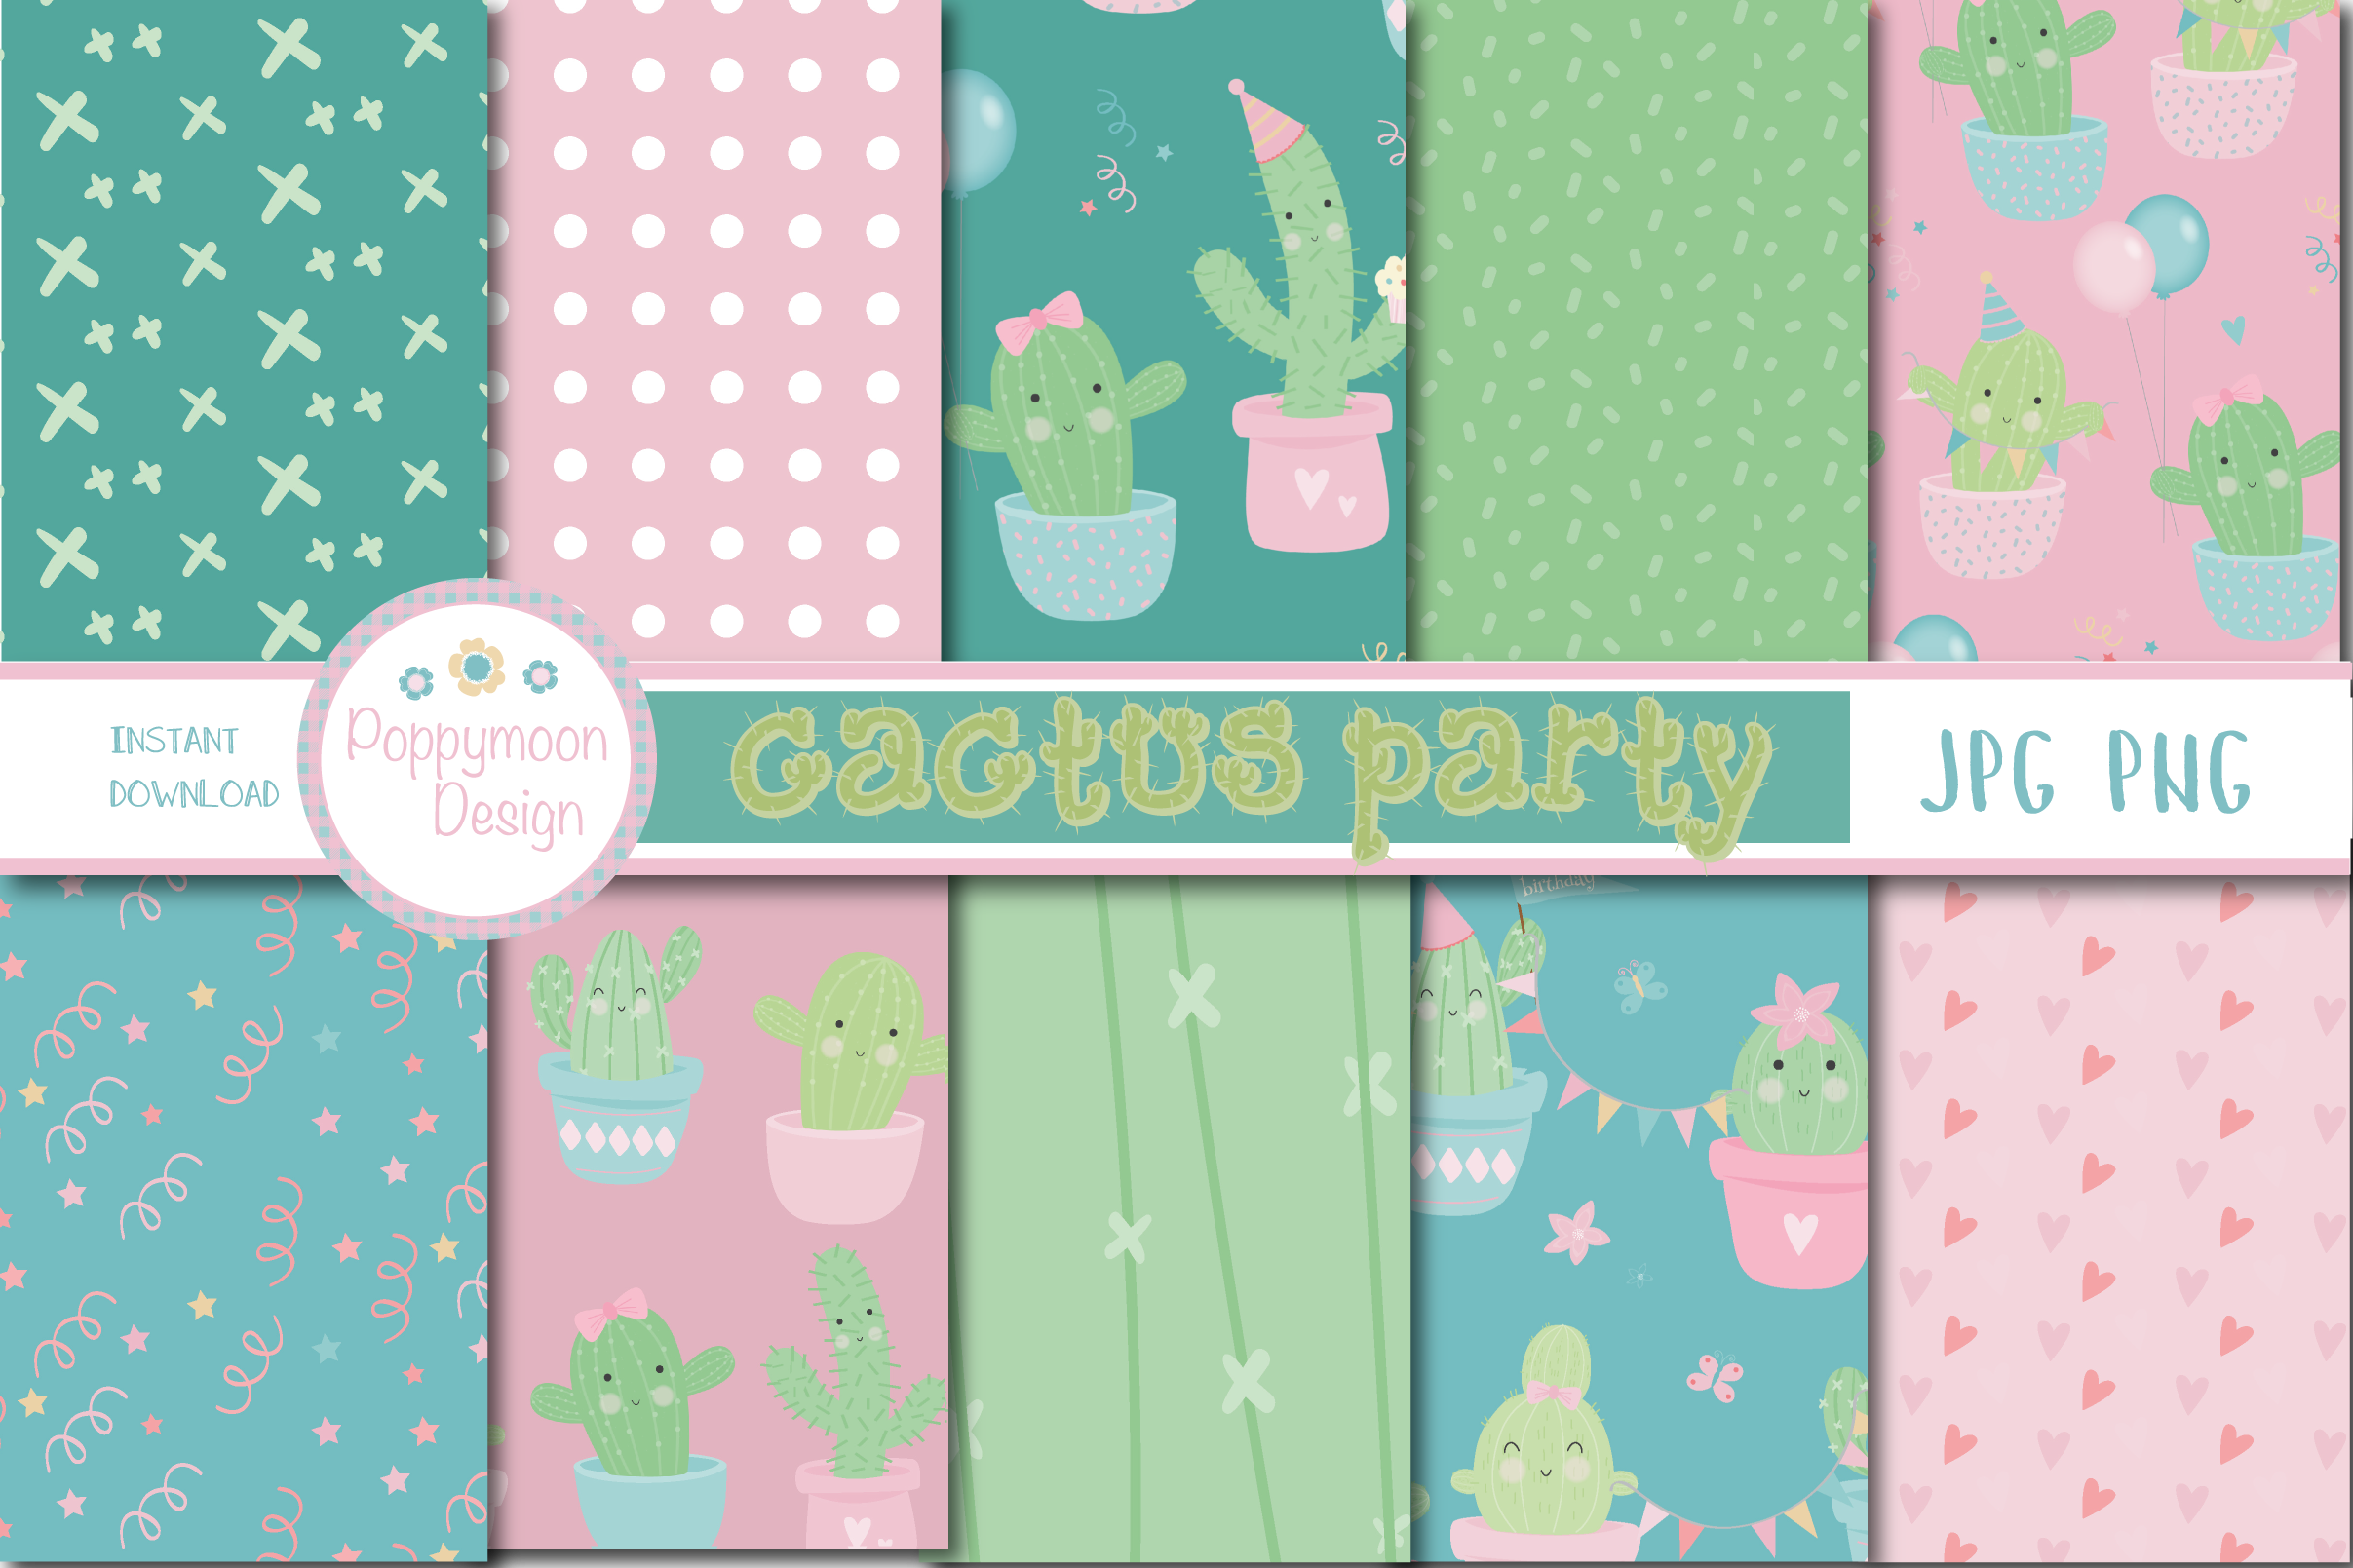 Download Free Cactus Party Paper Graphic By Poppymoondesign Creative Fabrica for Cricut Explore, Silhouette and other cutting machines.